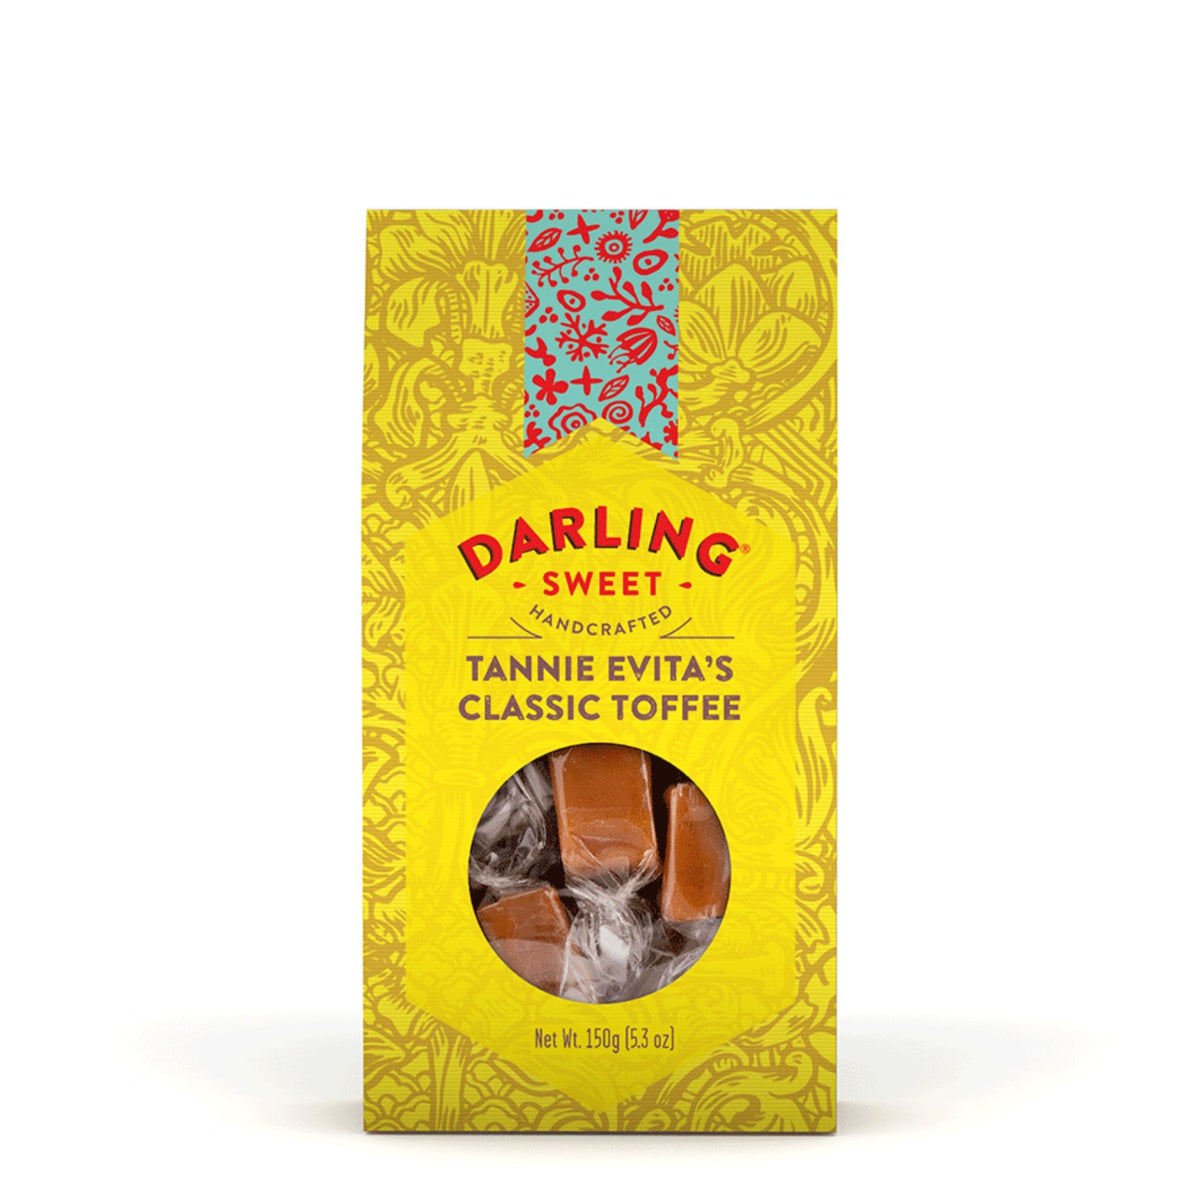 Darling Sweet Tannie Evita's Classic Toffee